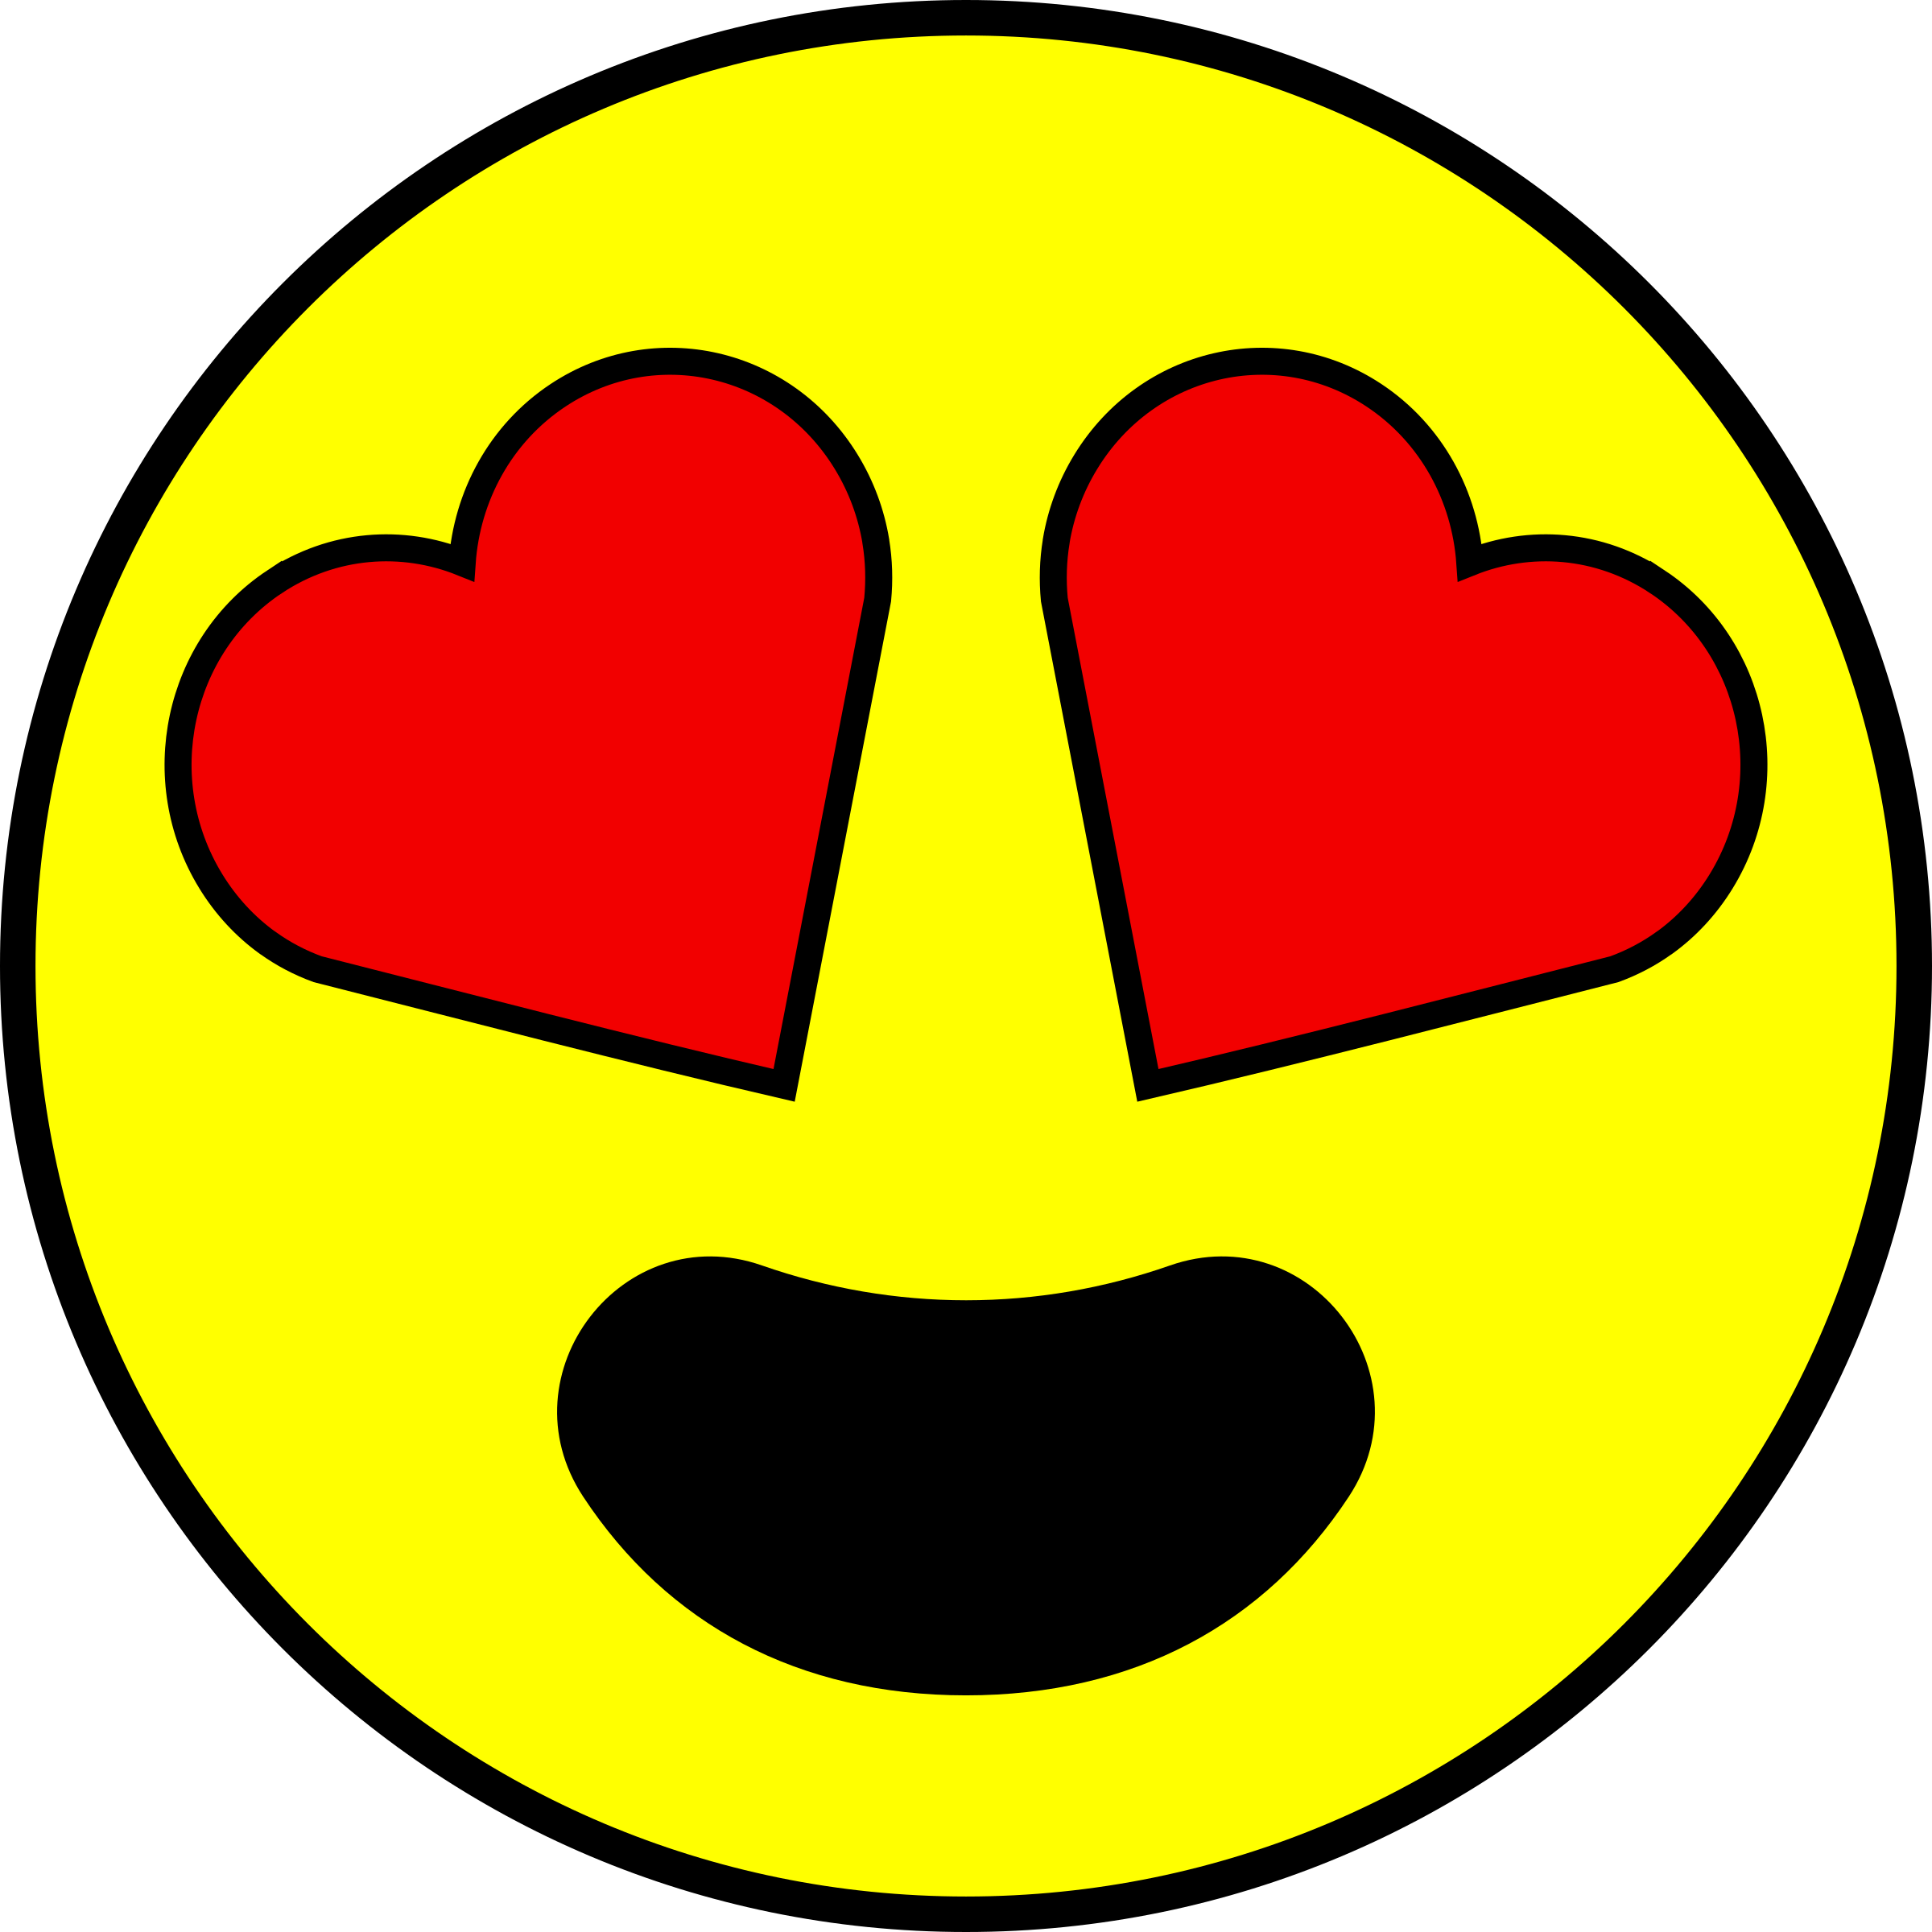 Love smiley png. Icons free and downloads